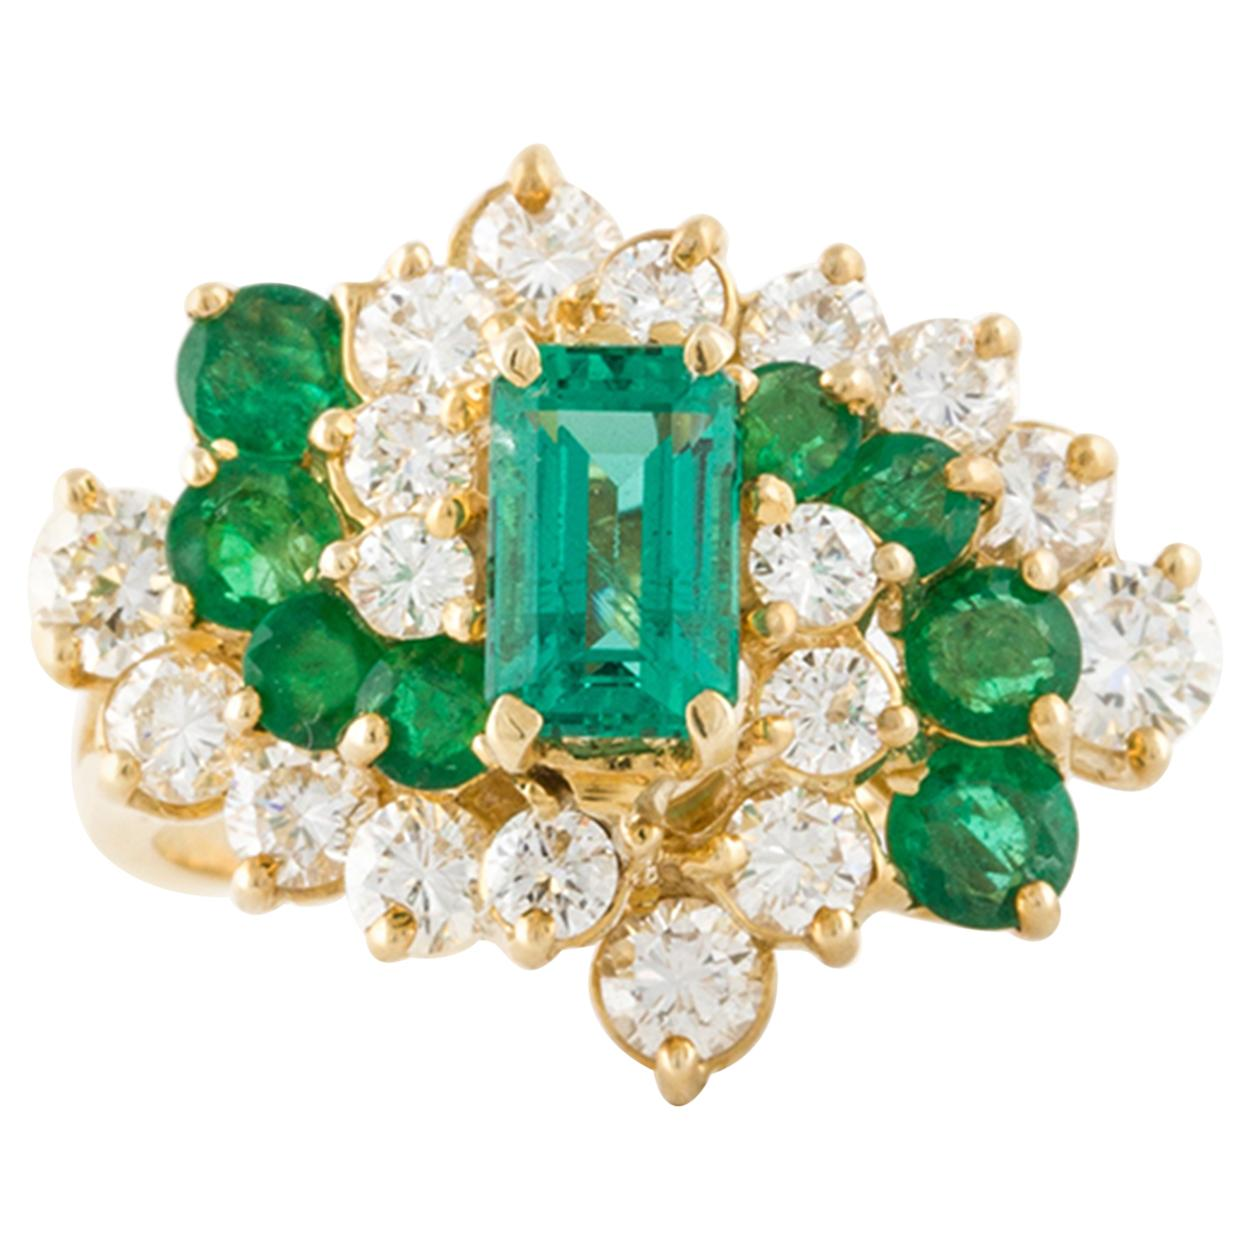 18K Yellow Gold Diamond and Emerald Cluster Ring